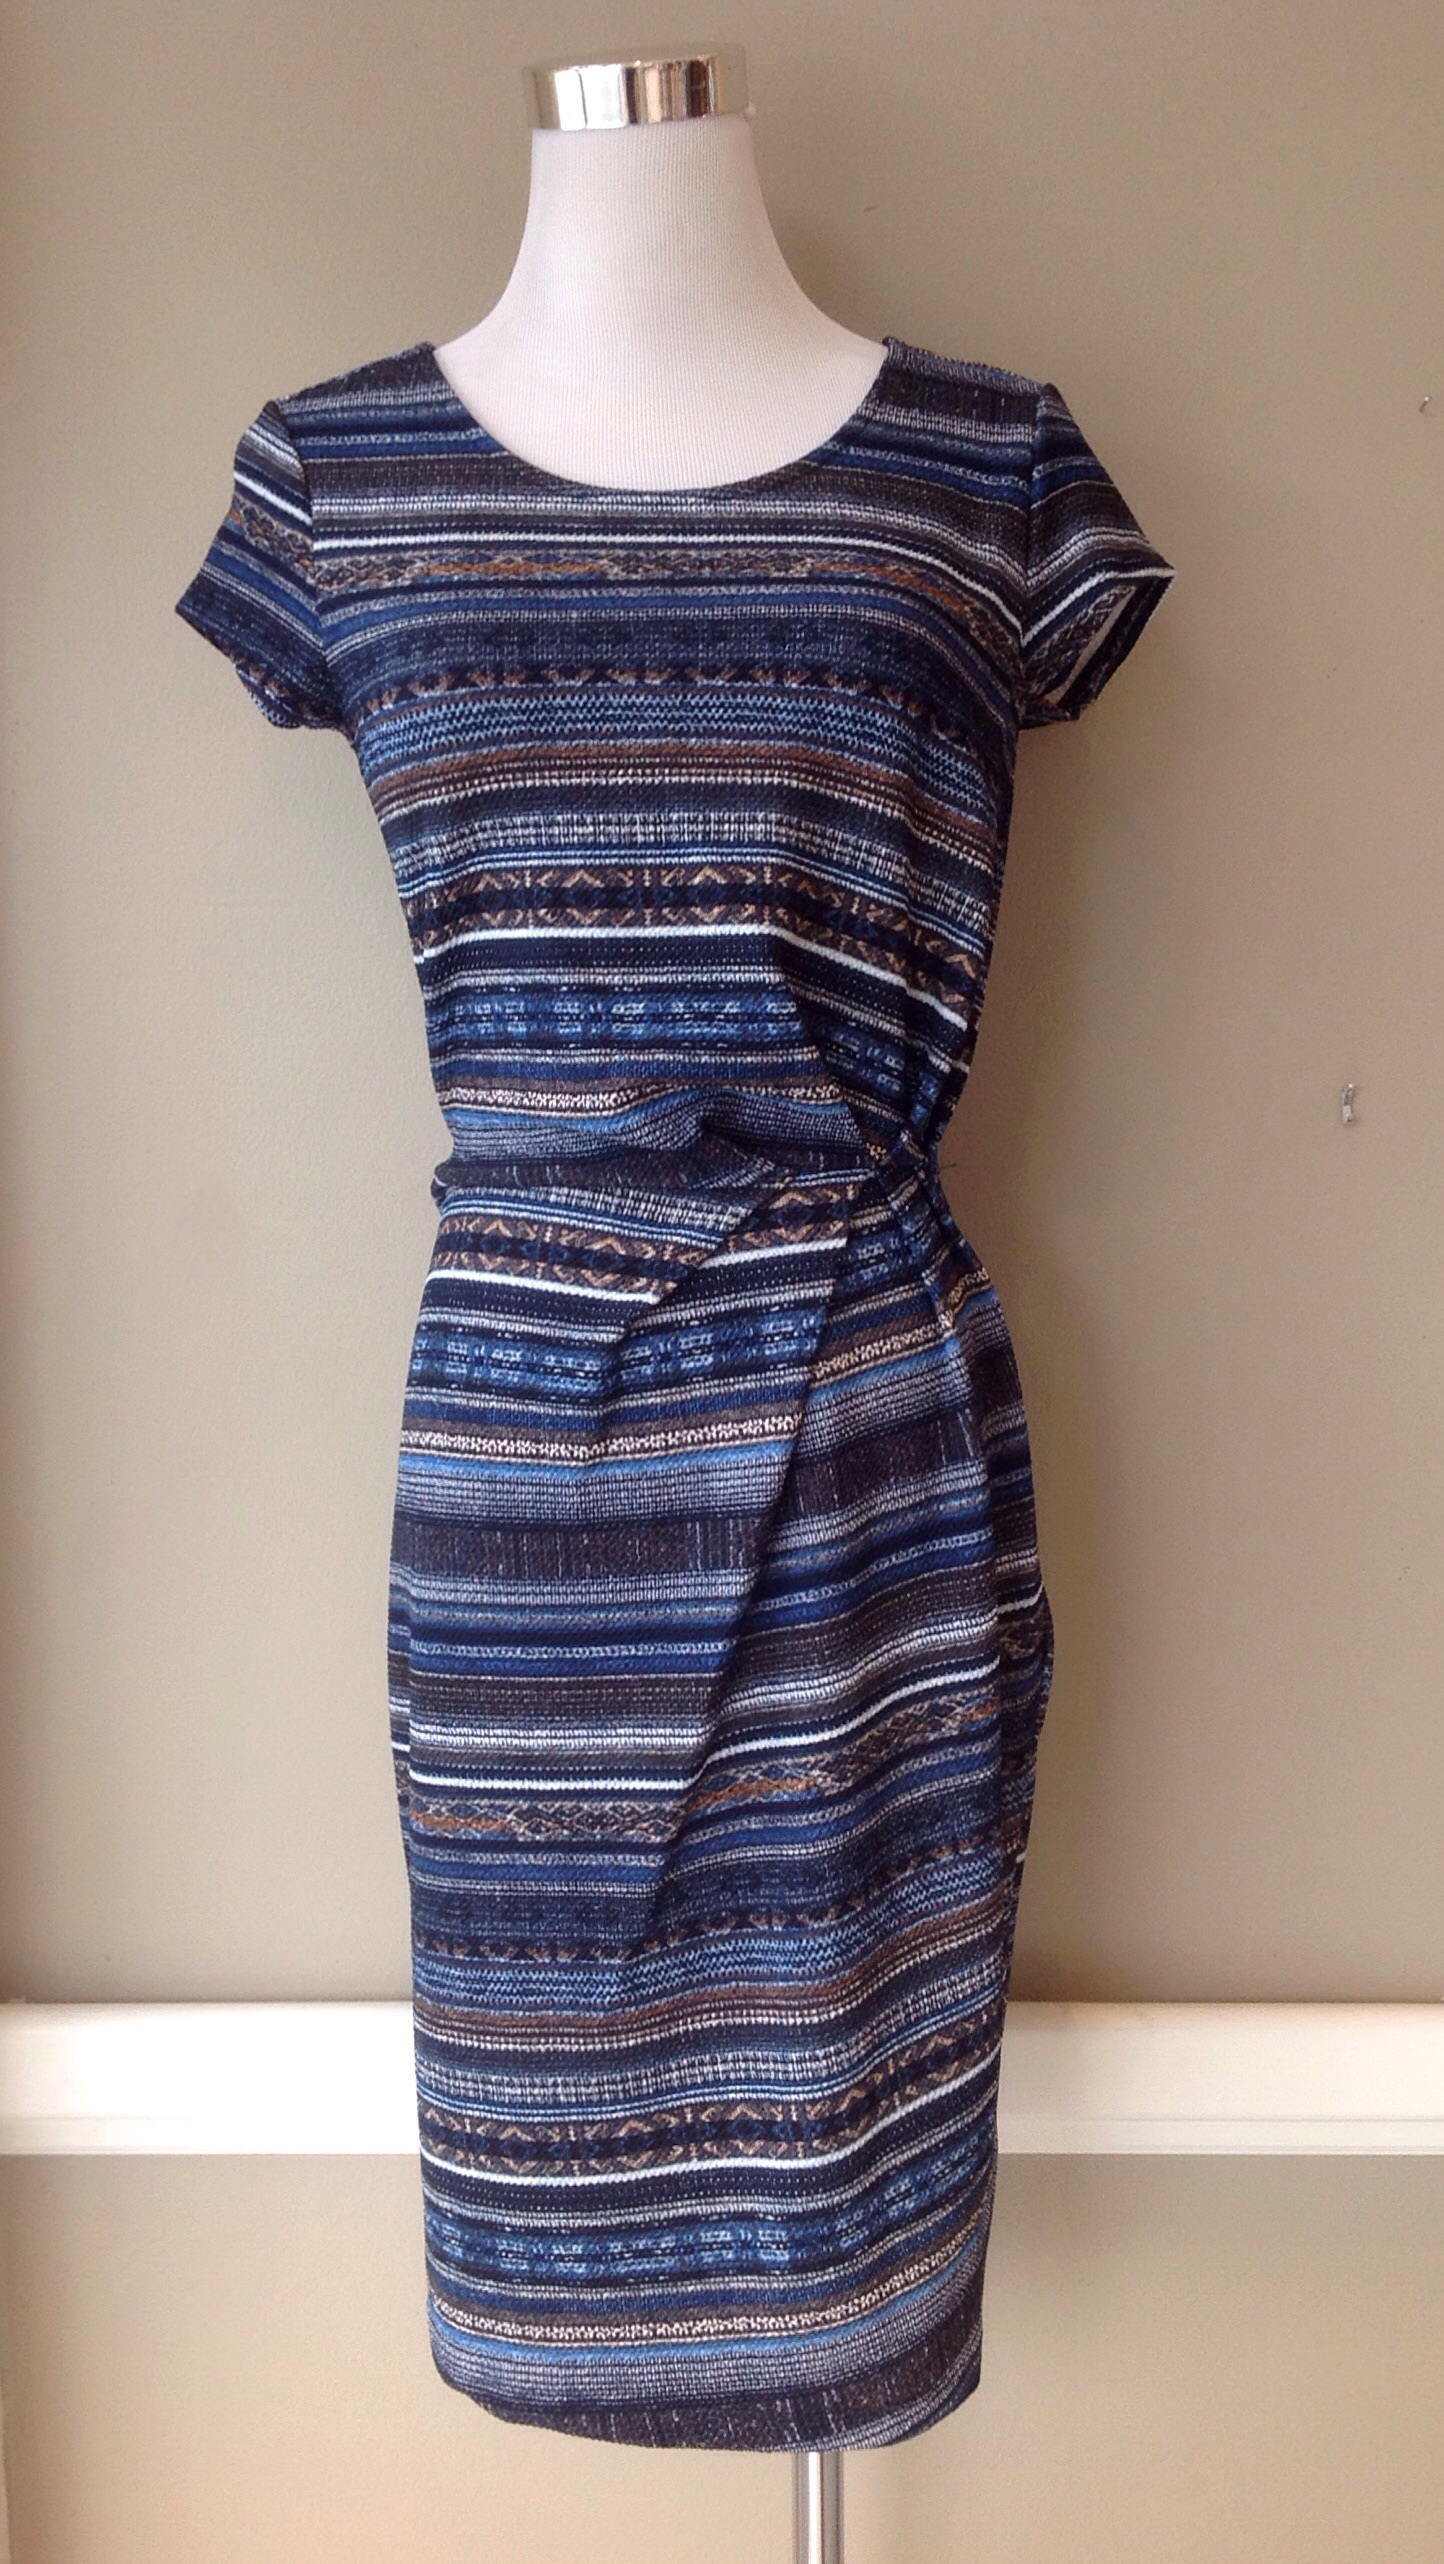 Textured knit dress with side gather in navy/multi stripe, $42